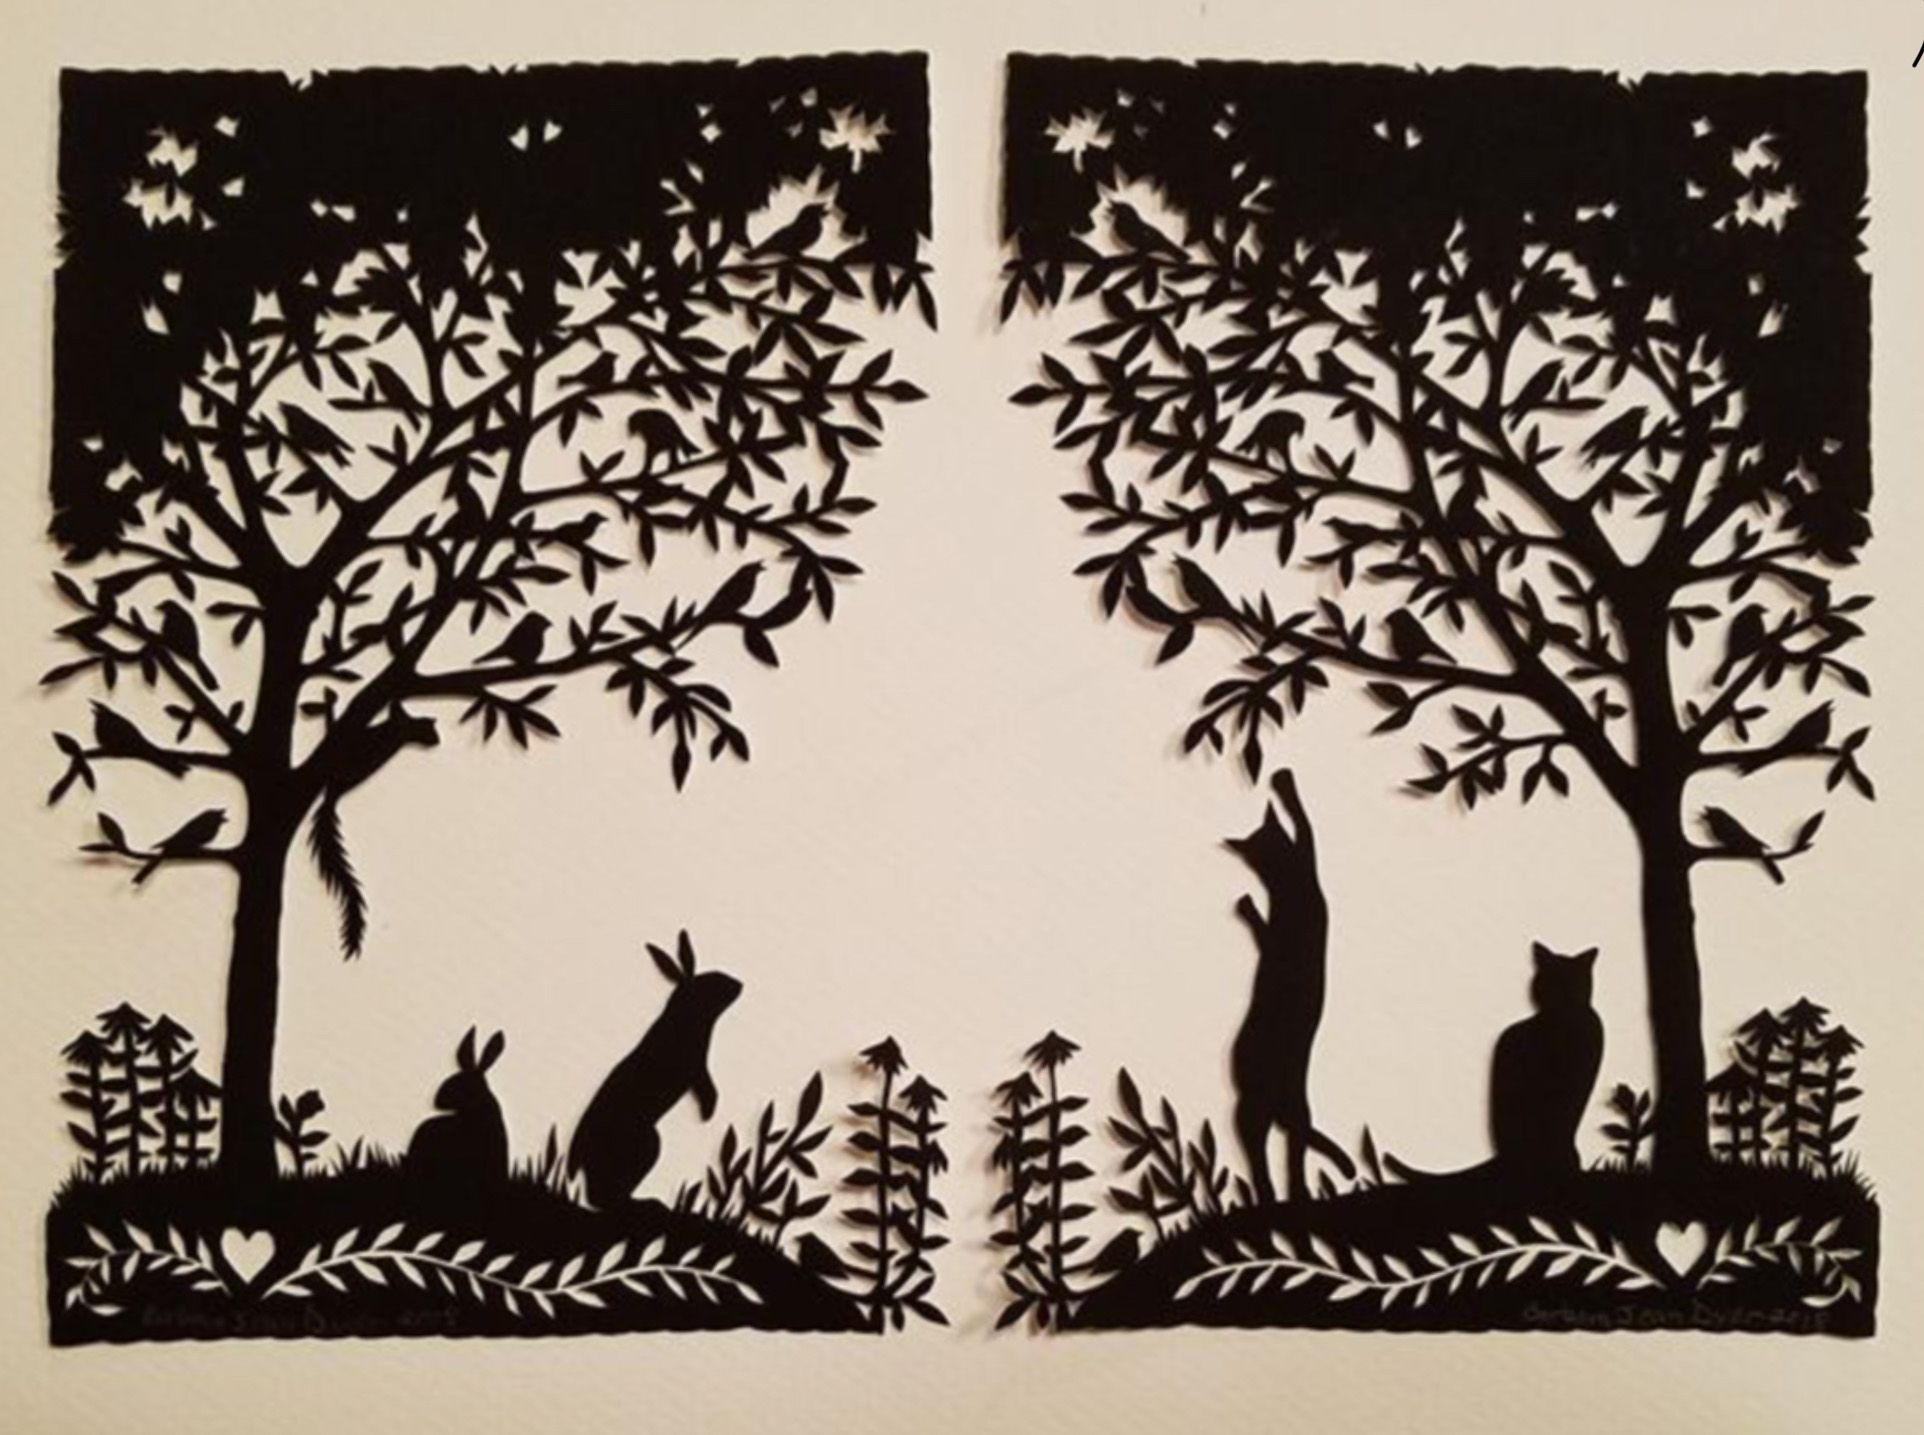 Pin by Charlene Underhill on Animal Silhouettes